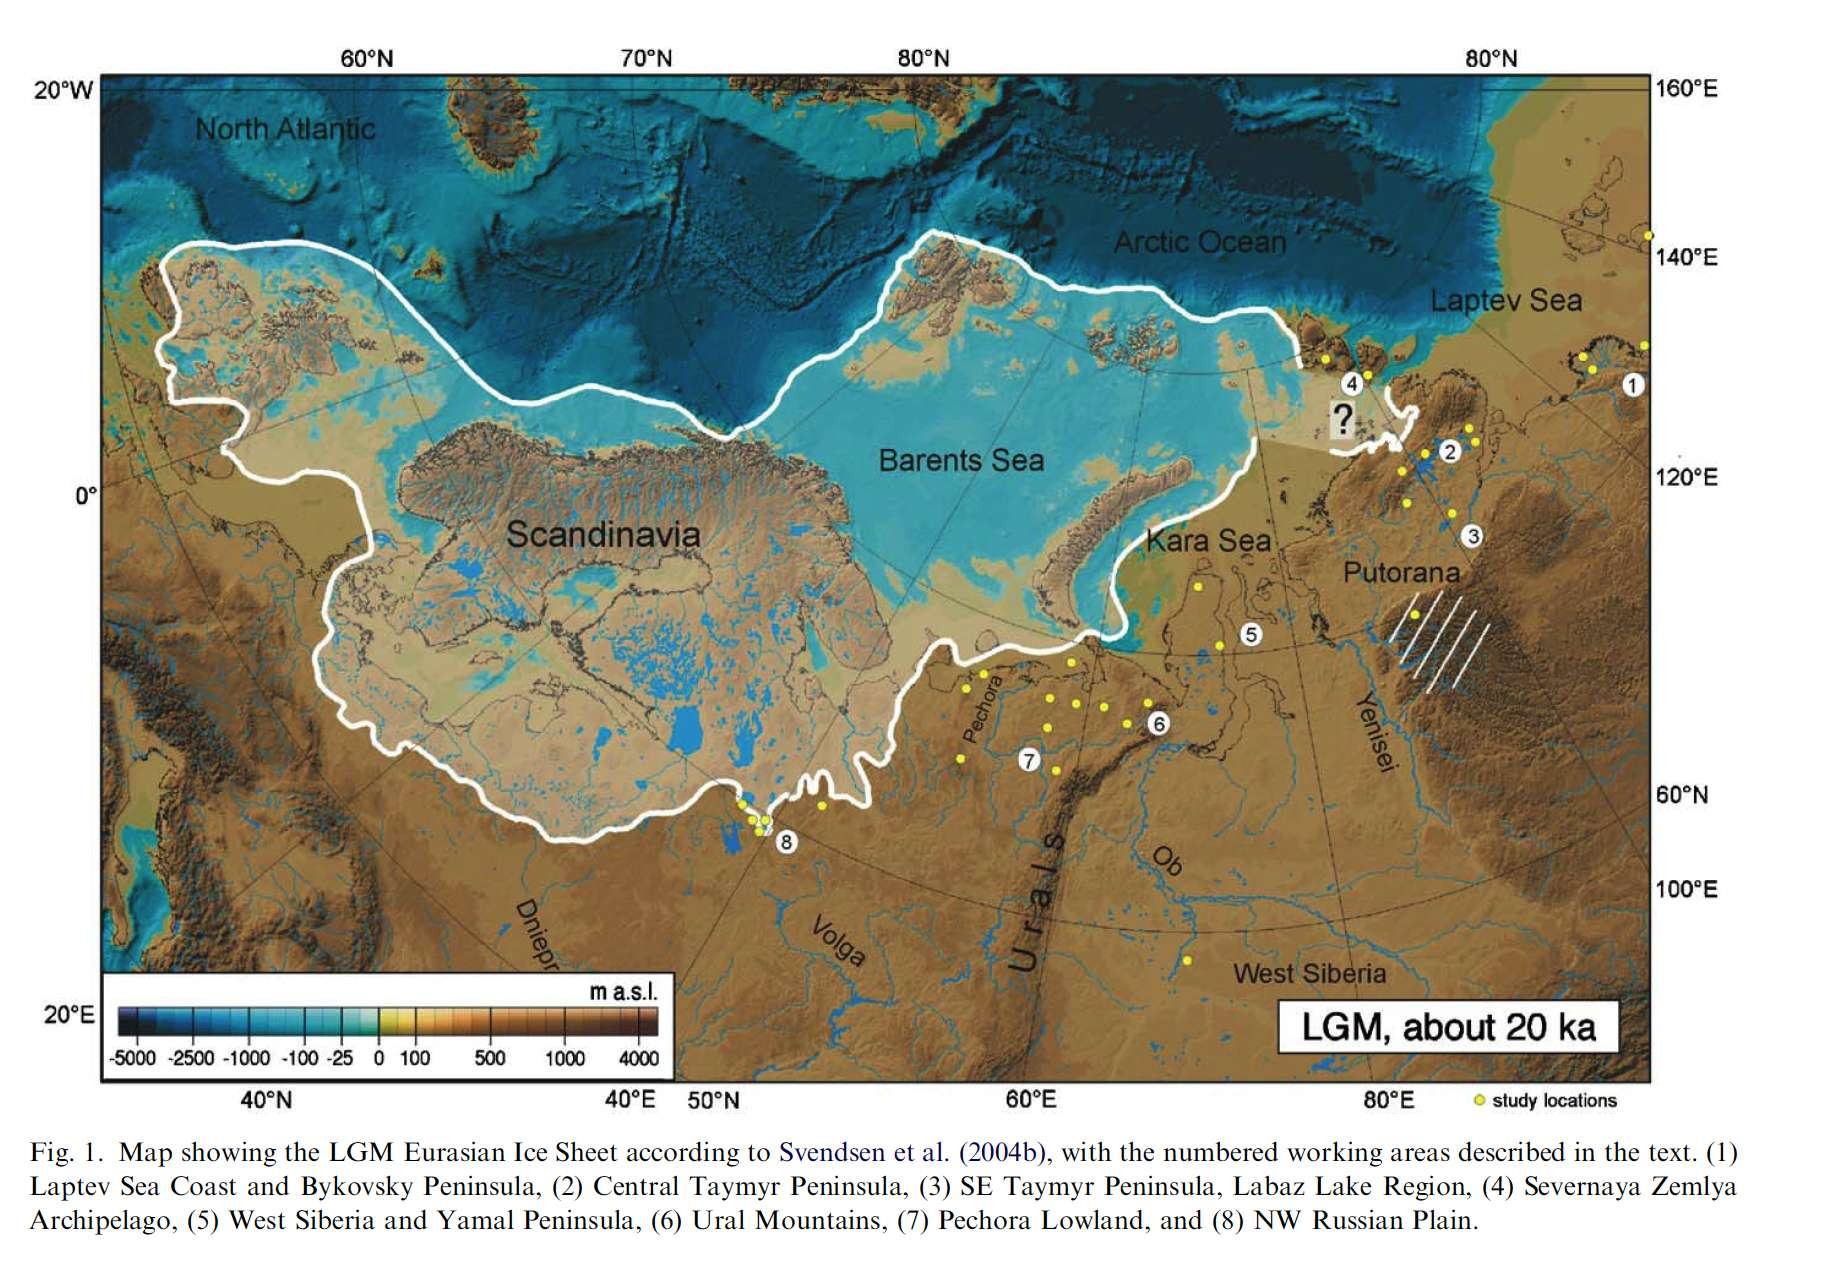 europe ice sheet lgm map showing the last glacial